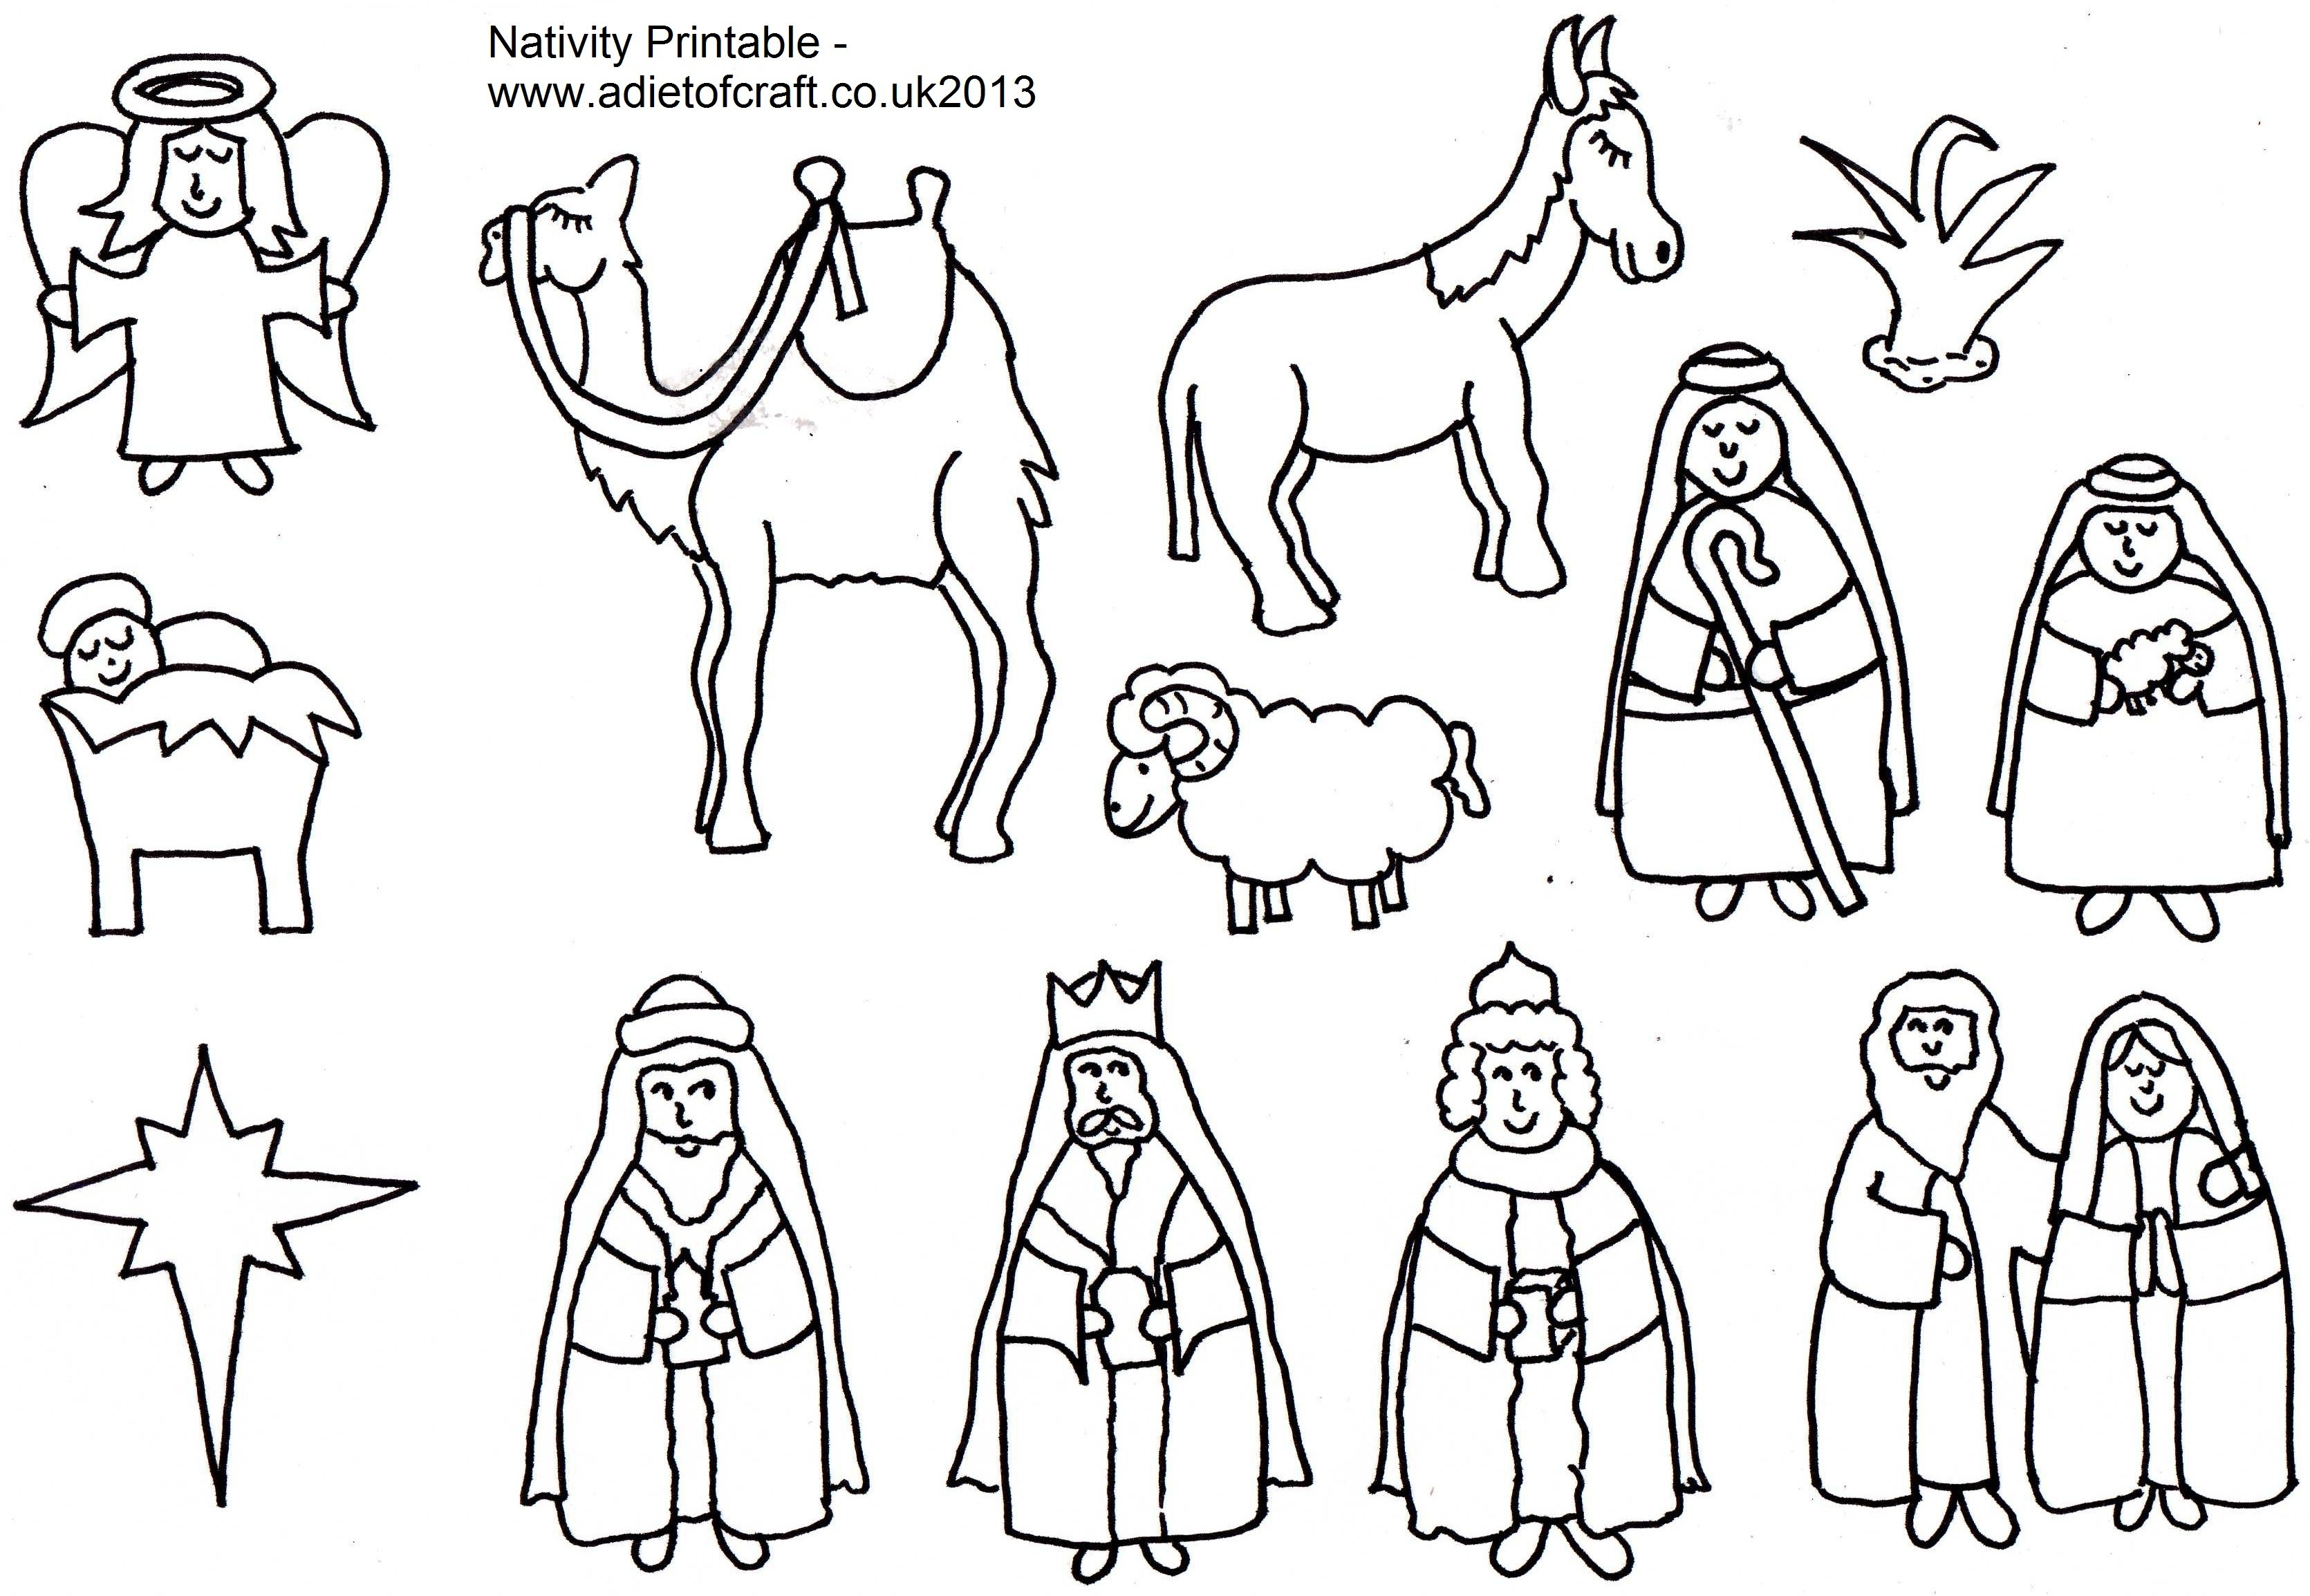 Christmas Nativity Coloring Sheets For Kids  7 Best of Nativity Story Printable Book Printable